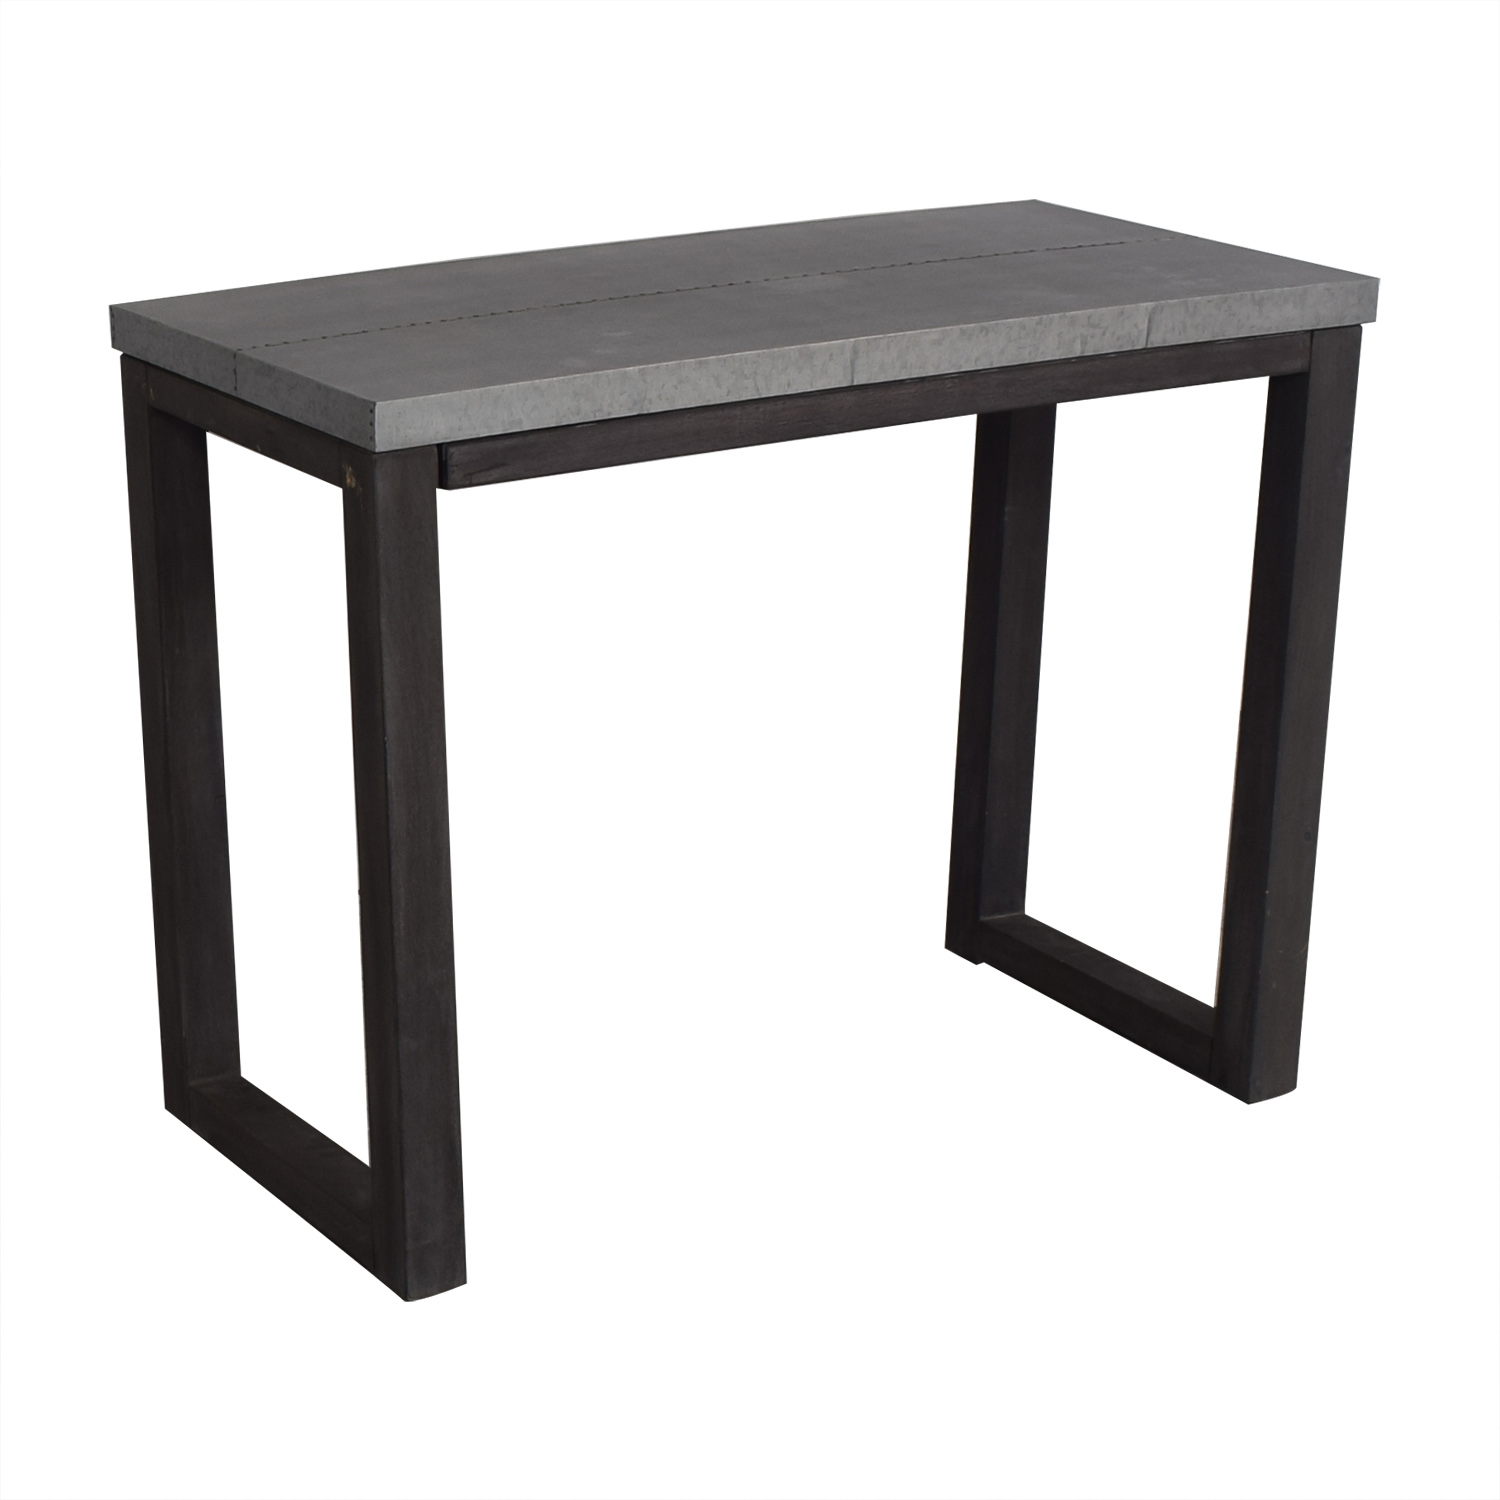 CB2 CB2 Steel Top Table for sale